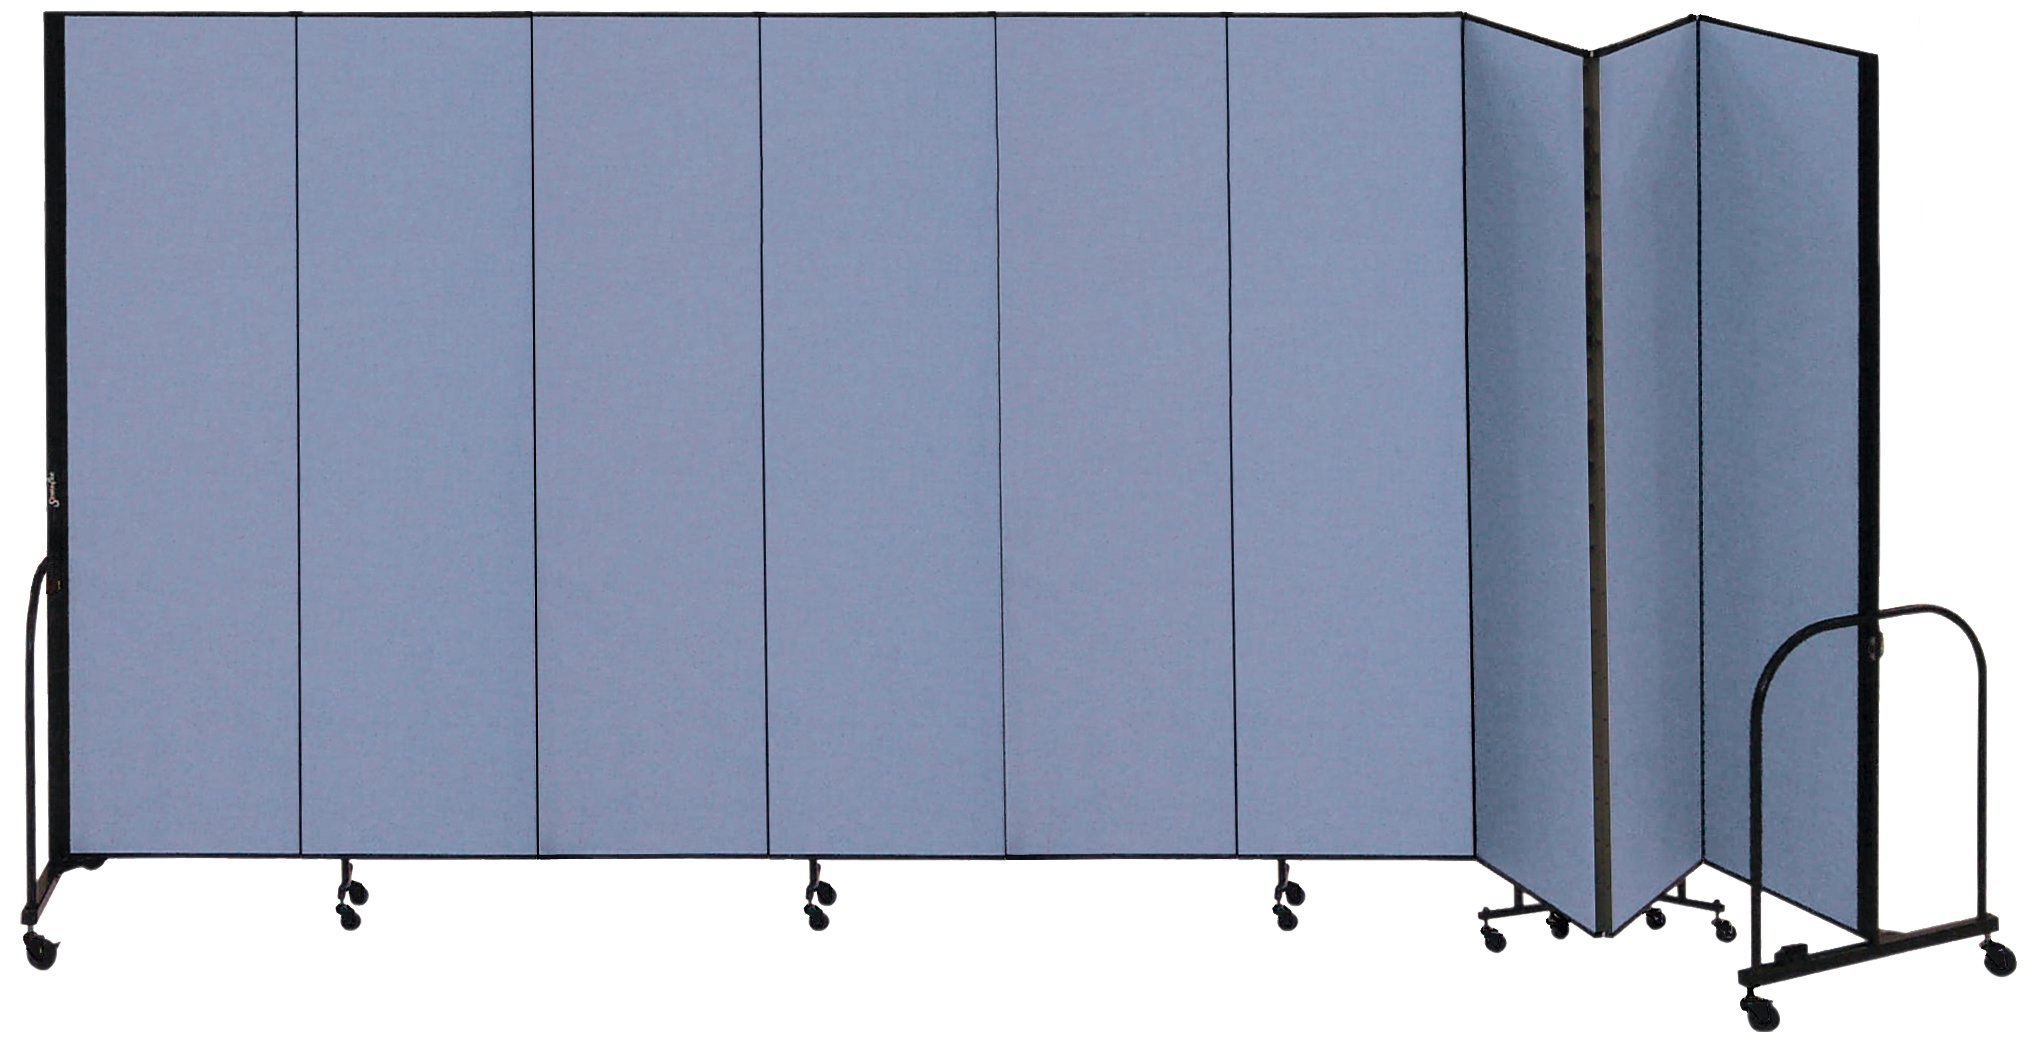 Screenflex Commercial Portable Room Divider (CFSL689-DB) 6 Feet 8 Inches High by 16 Feet 9 Inches Long, Designer Lake Fabric